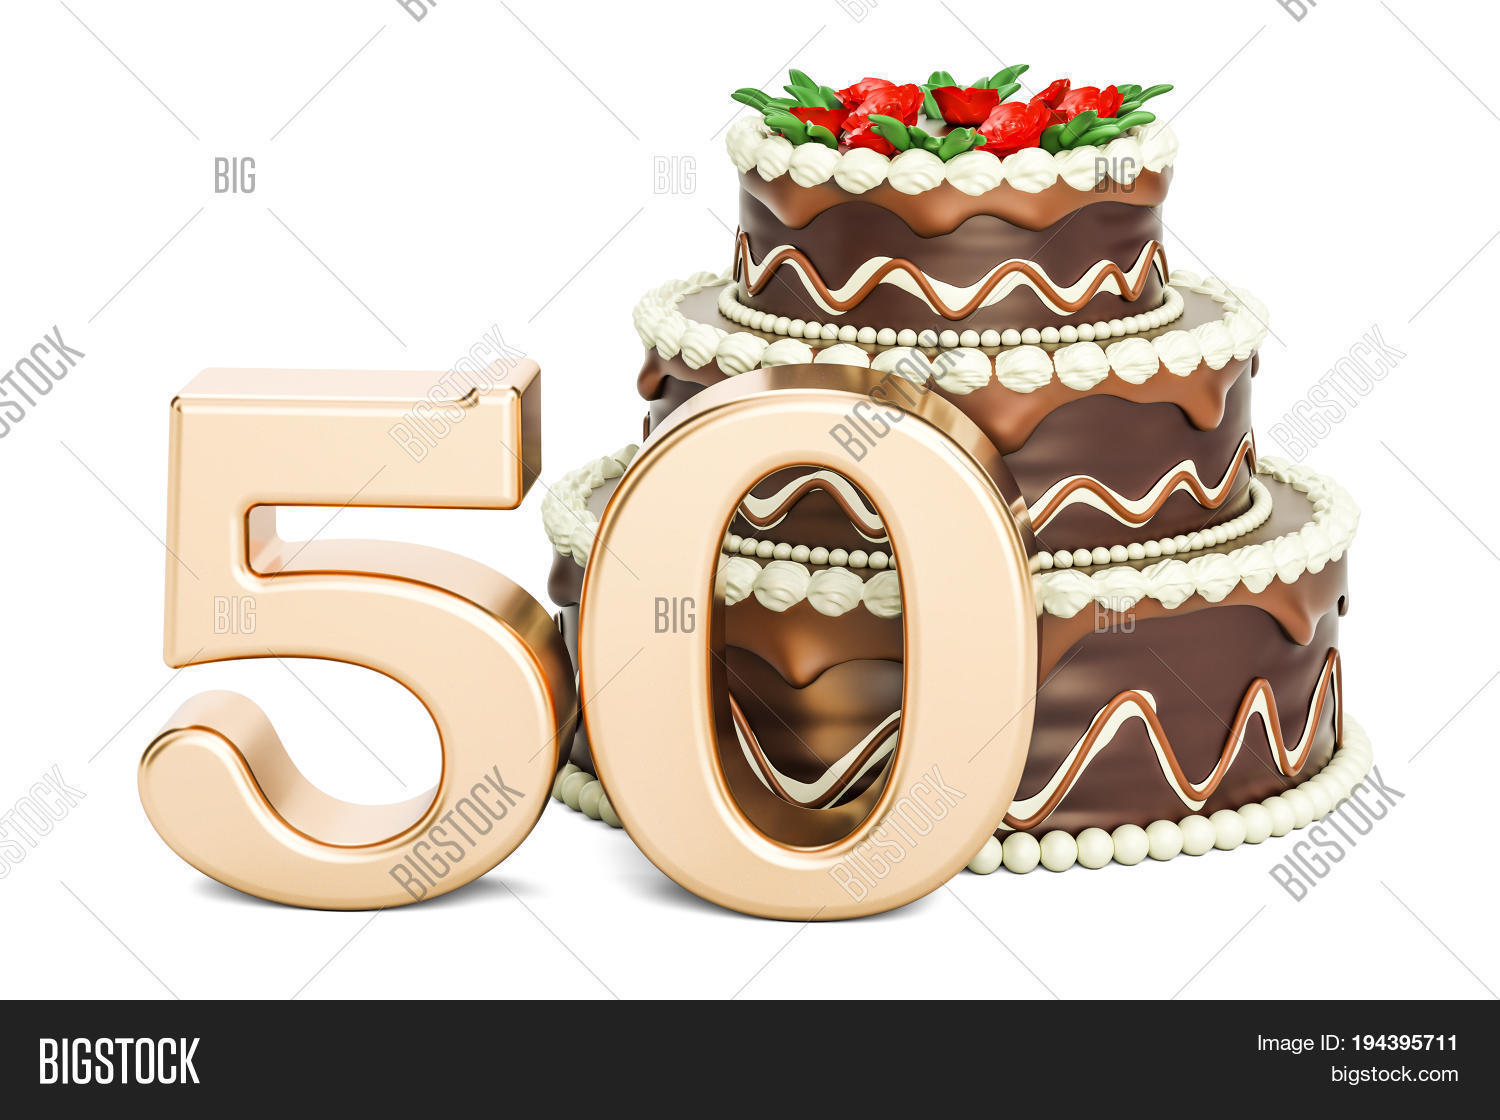 Chocolate Birthday Cake With Golden Number 50 3D Rendering Isolated On White Background